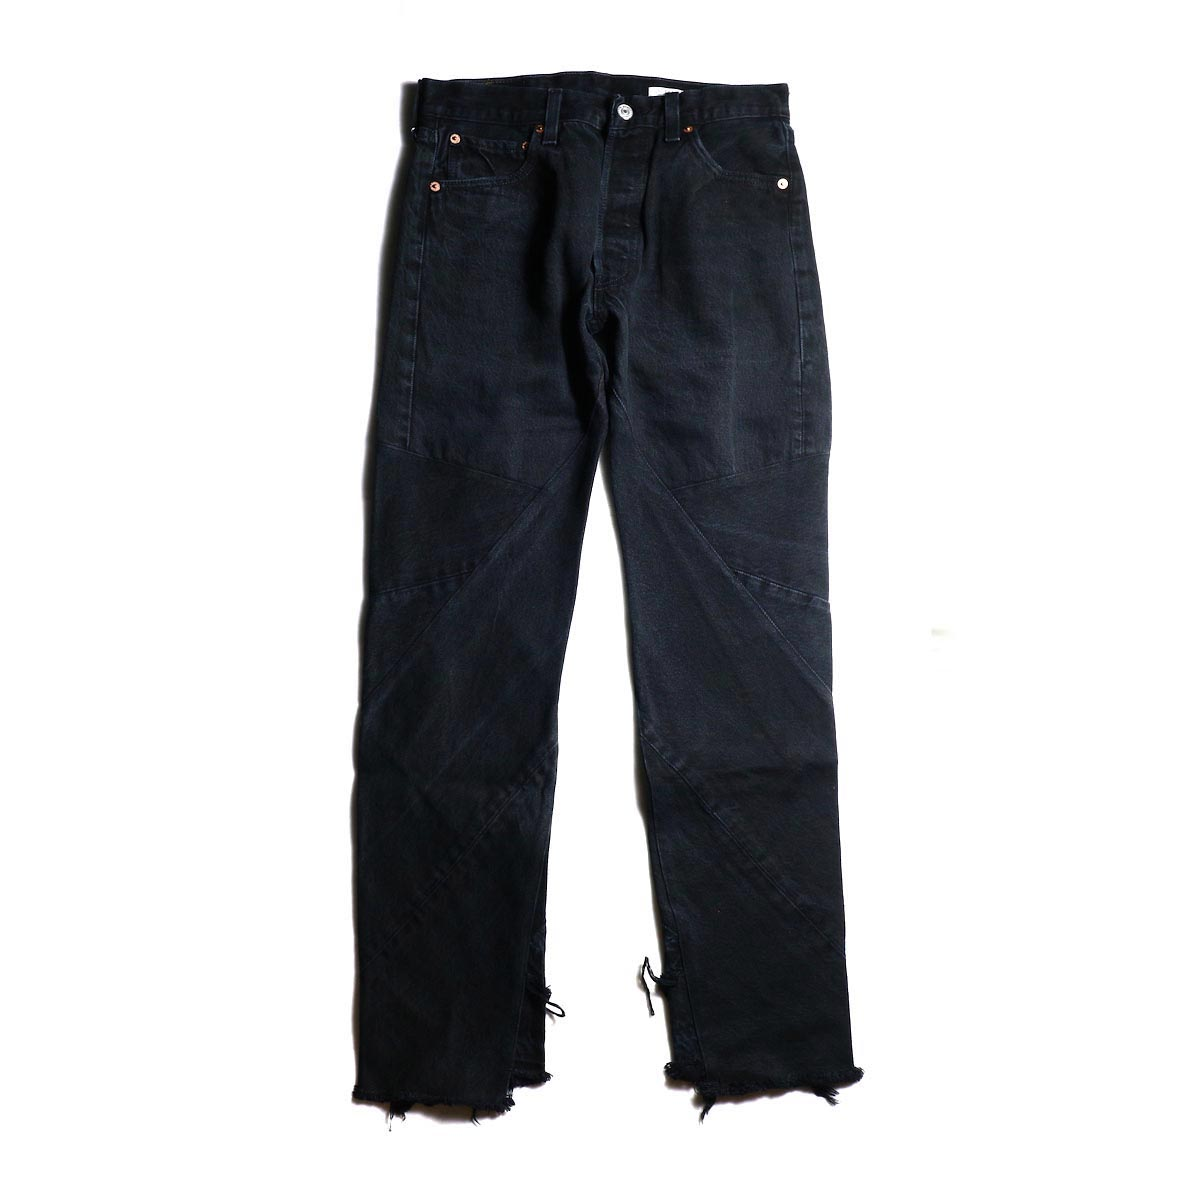 OLD PARK / SHIFT JEANS (Ssize-B)